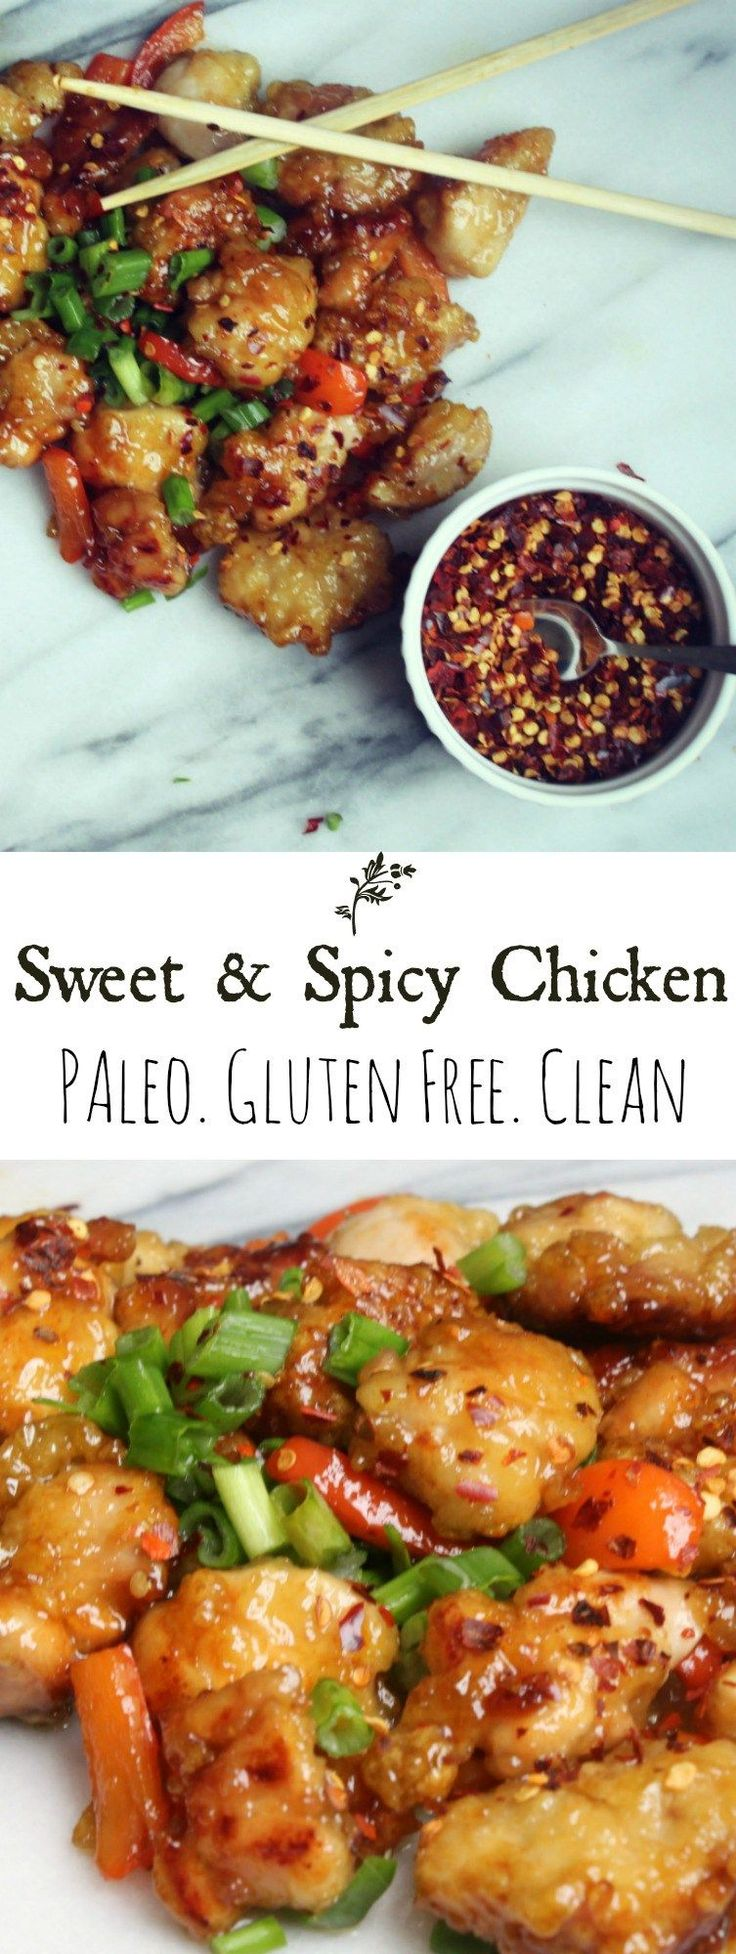 Sweet And Spicy Chicken! A Clean, Paleo Take On Chinese Food! Also,